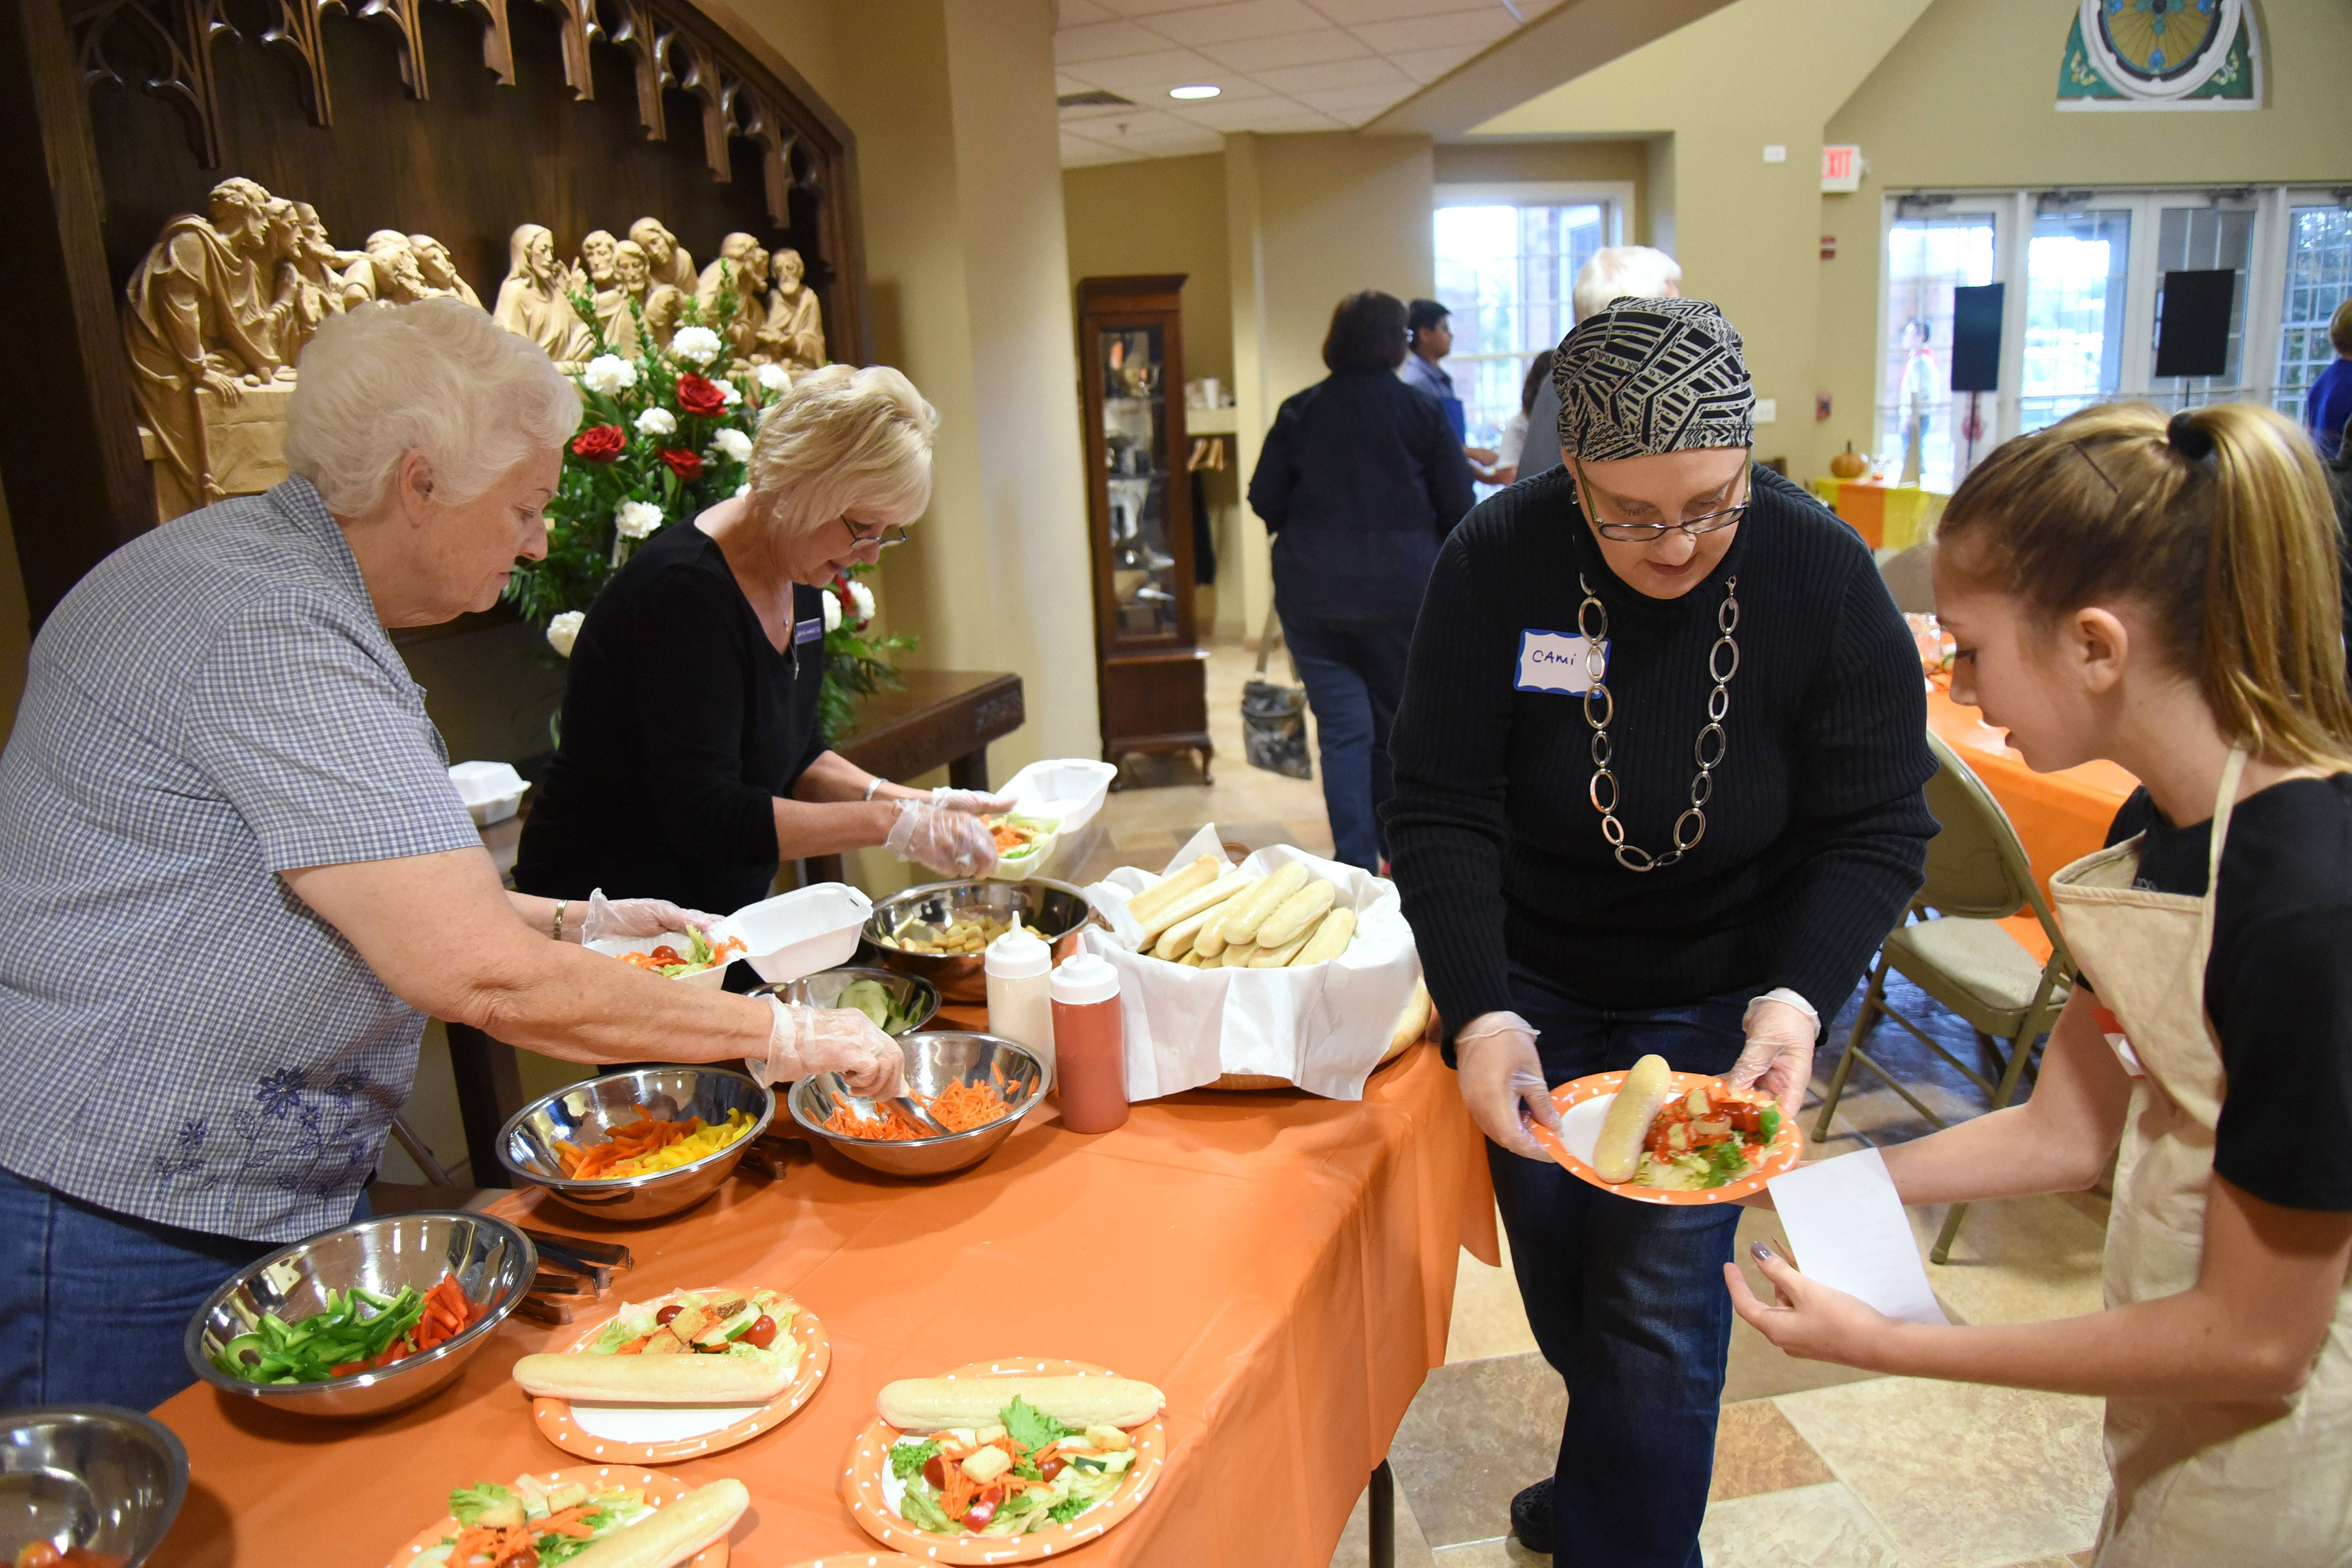 Pat Storer of Huntley, from left, Joanne Warkentien of West Dundee, Cami Bailey of Elgin and Alyson Doherty of West Dundee prepare and serve salads at the First Congregational Church of Dundee during the monthly Hilltop Community Supper.